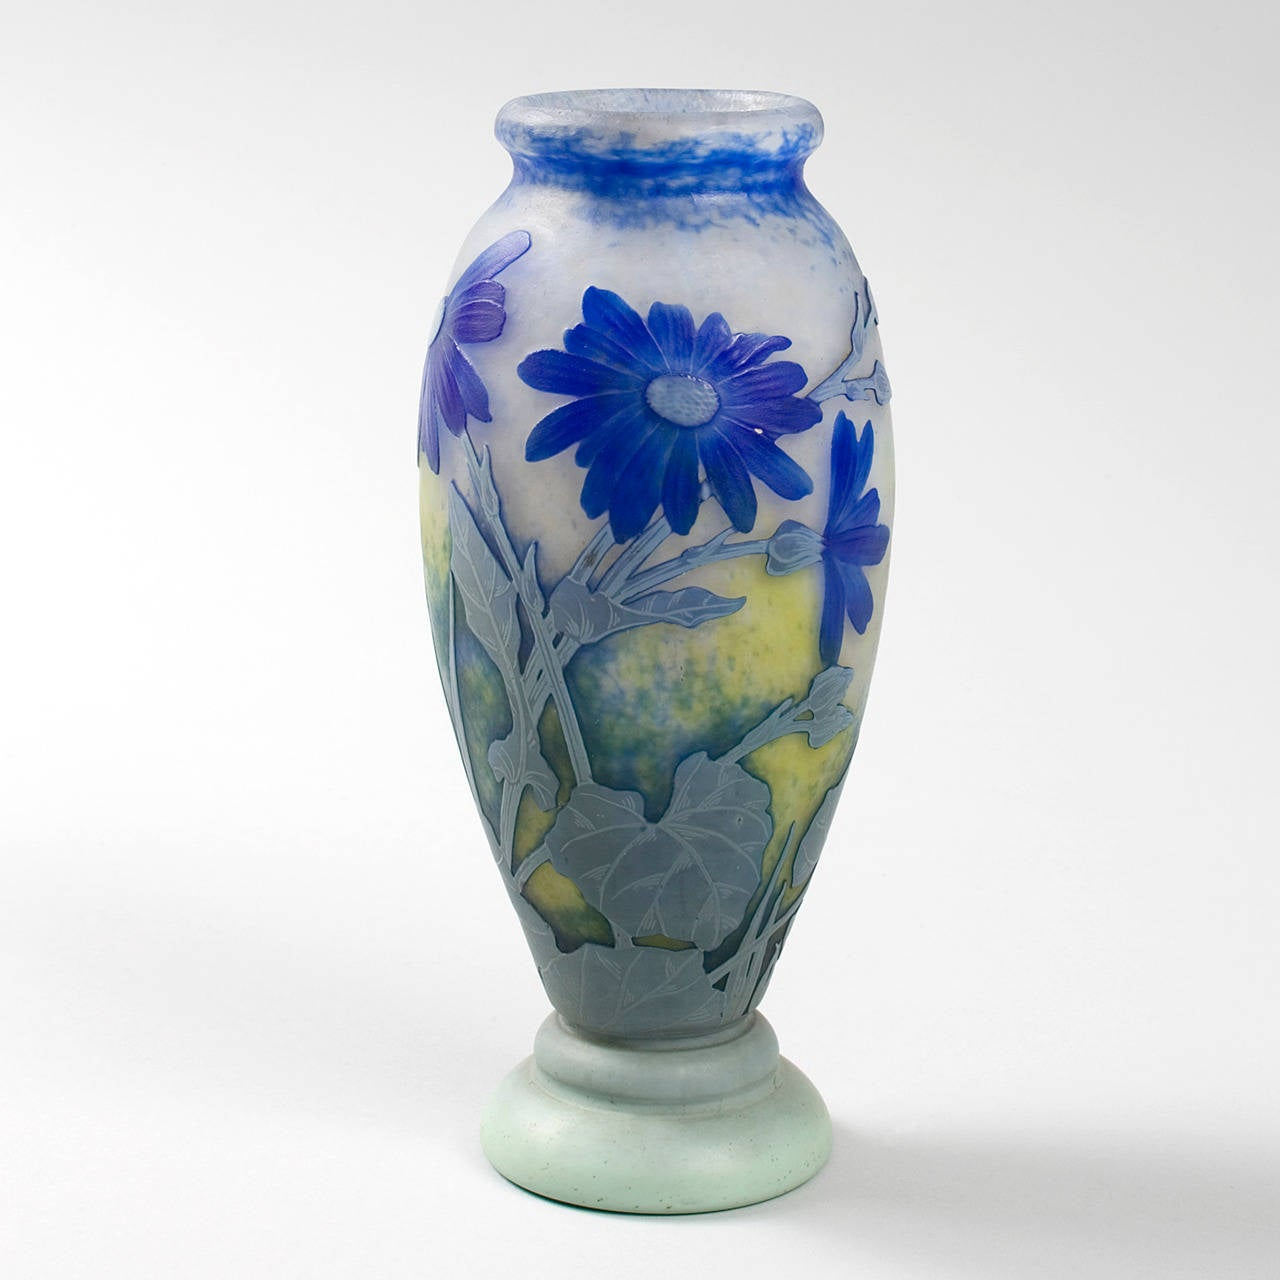 A French Art Nouveau wheel-carved cameo glass vase by Daum, featuring a decoration of blue flowers and light blue and grey stems and leaves on an opaque, mottled white and yellow ground, circa 1910.